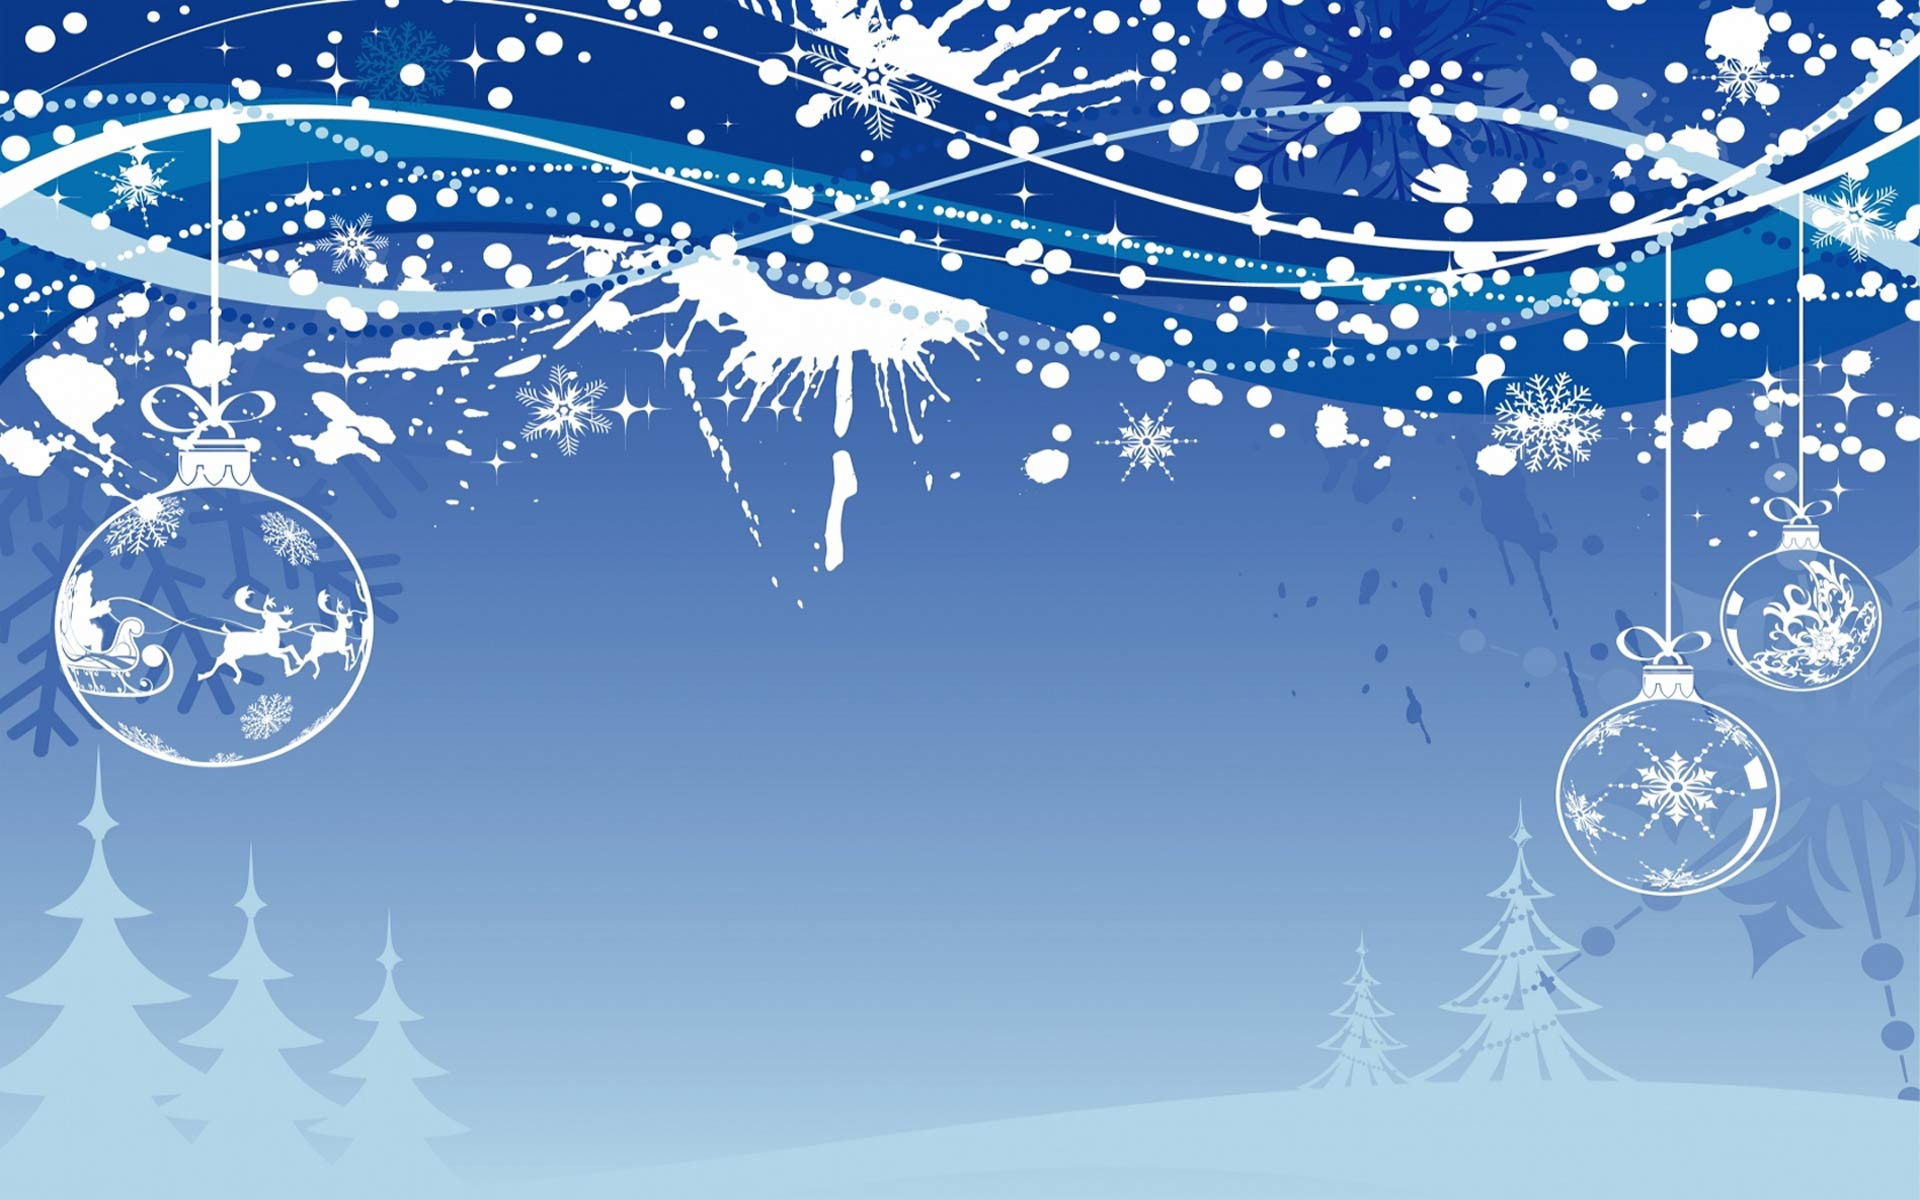 xmas-background-free-download | wallpaper.wiki